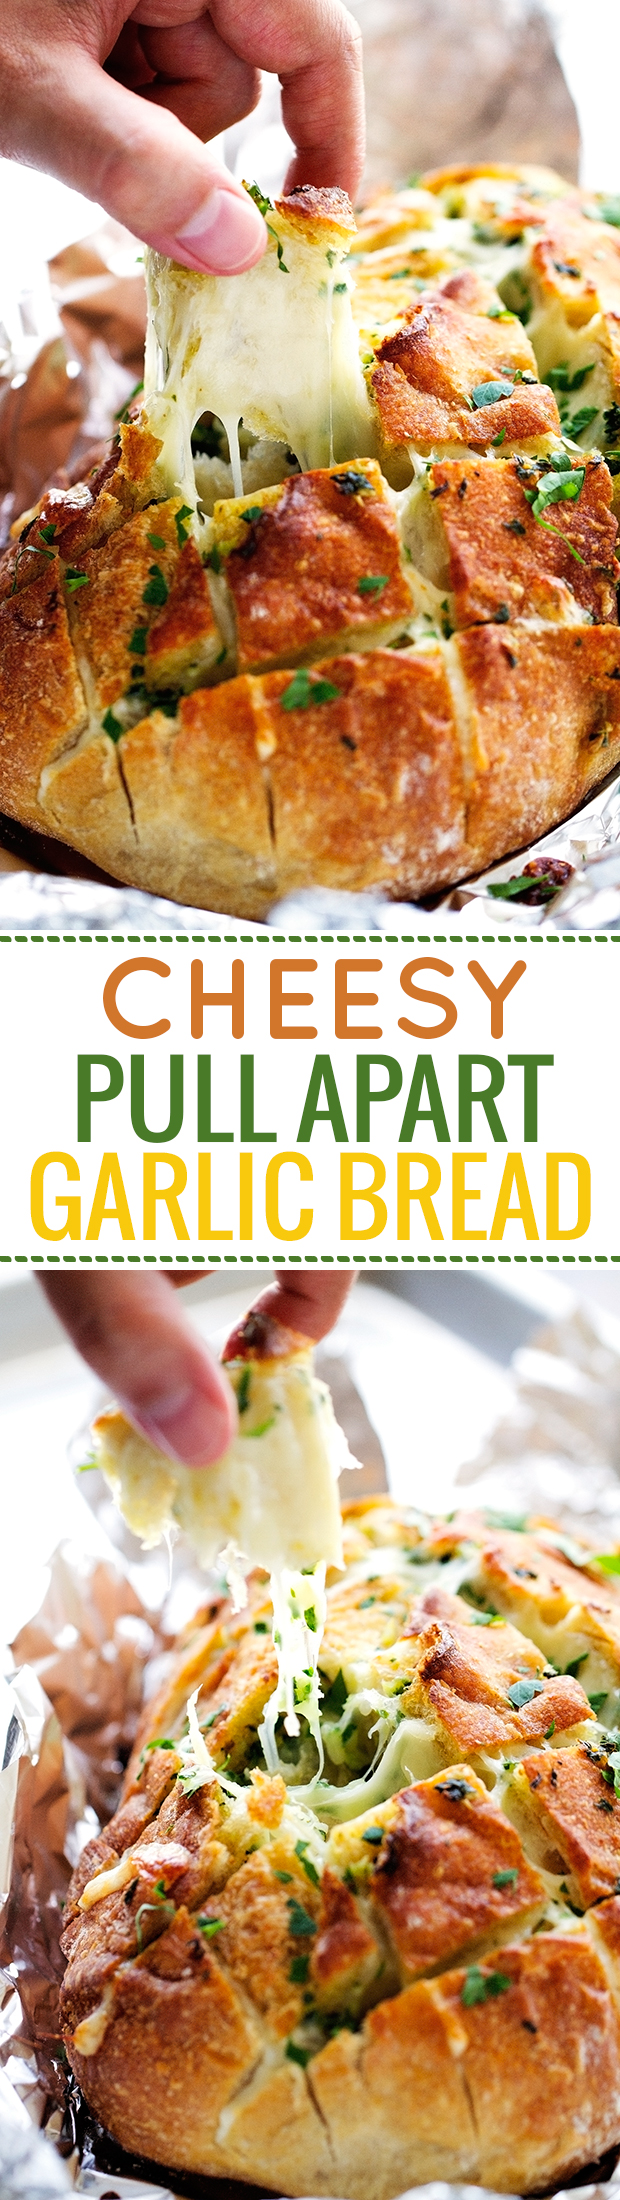 Cheesy Garlic Pull Apart Bread - Load bread stuffed with fresh mozzarella cheese and melted garlic butter. You'll NEVER eat regular garlic bread EVER again! #garlicbread #pullapartbread #crackbread | Littlespicejar.com